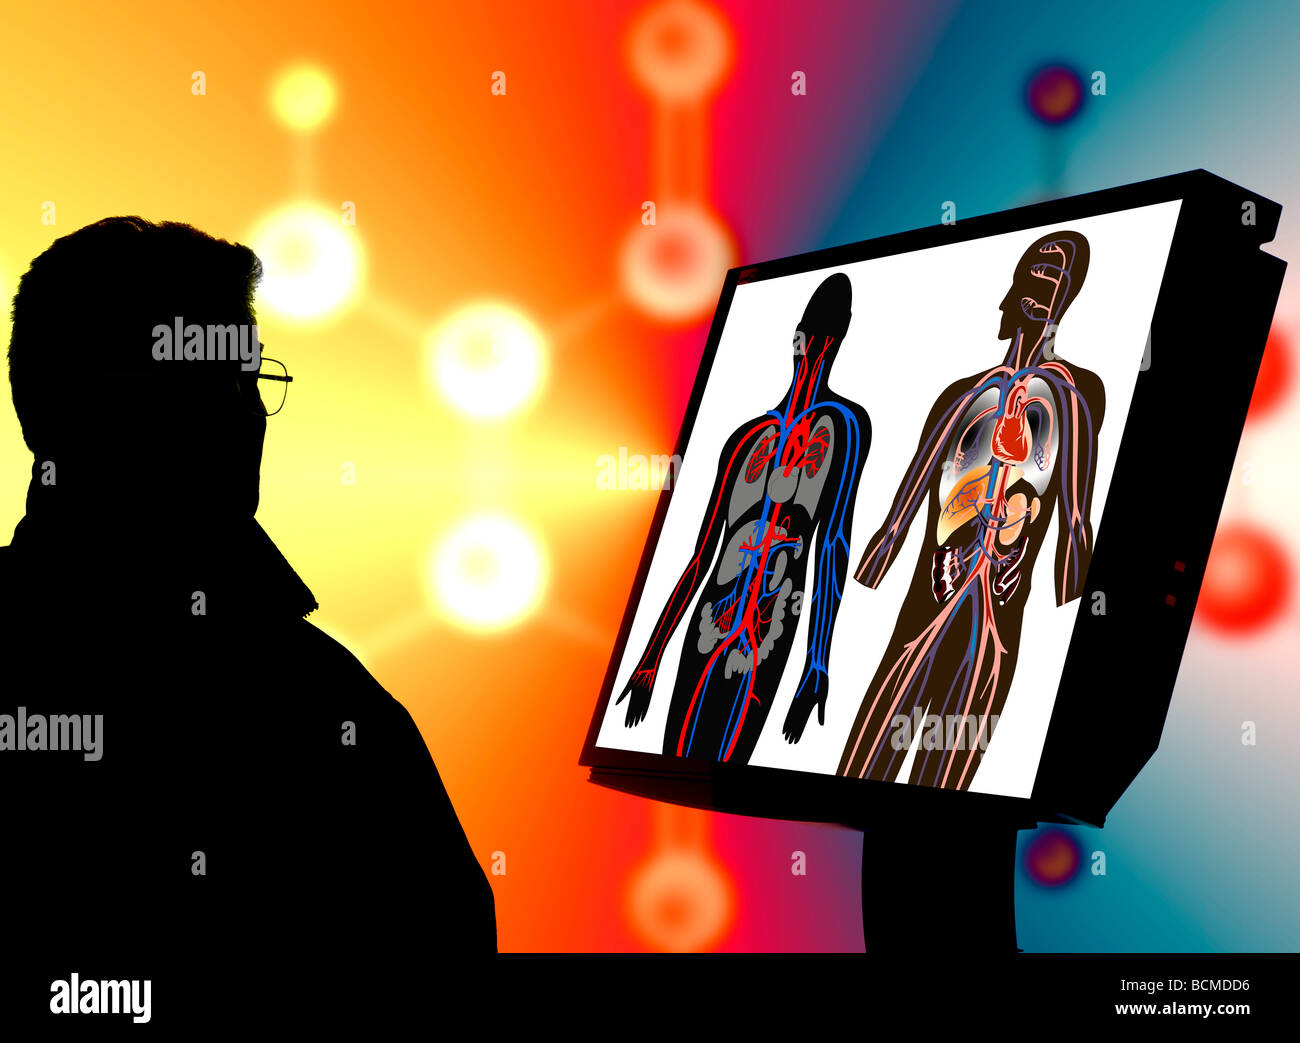 research doctor checking arterial flow illustrations on computer monitor - Stock Image